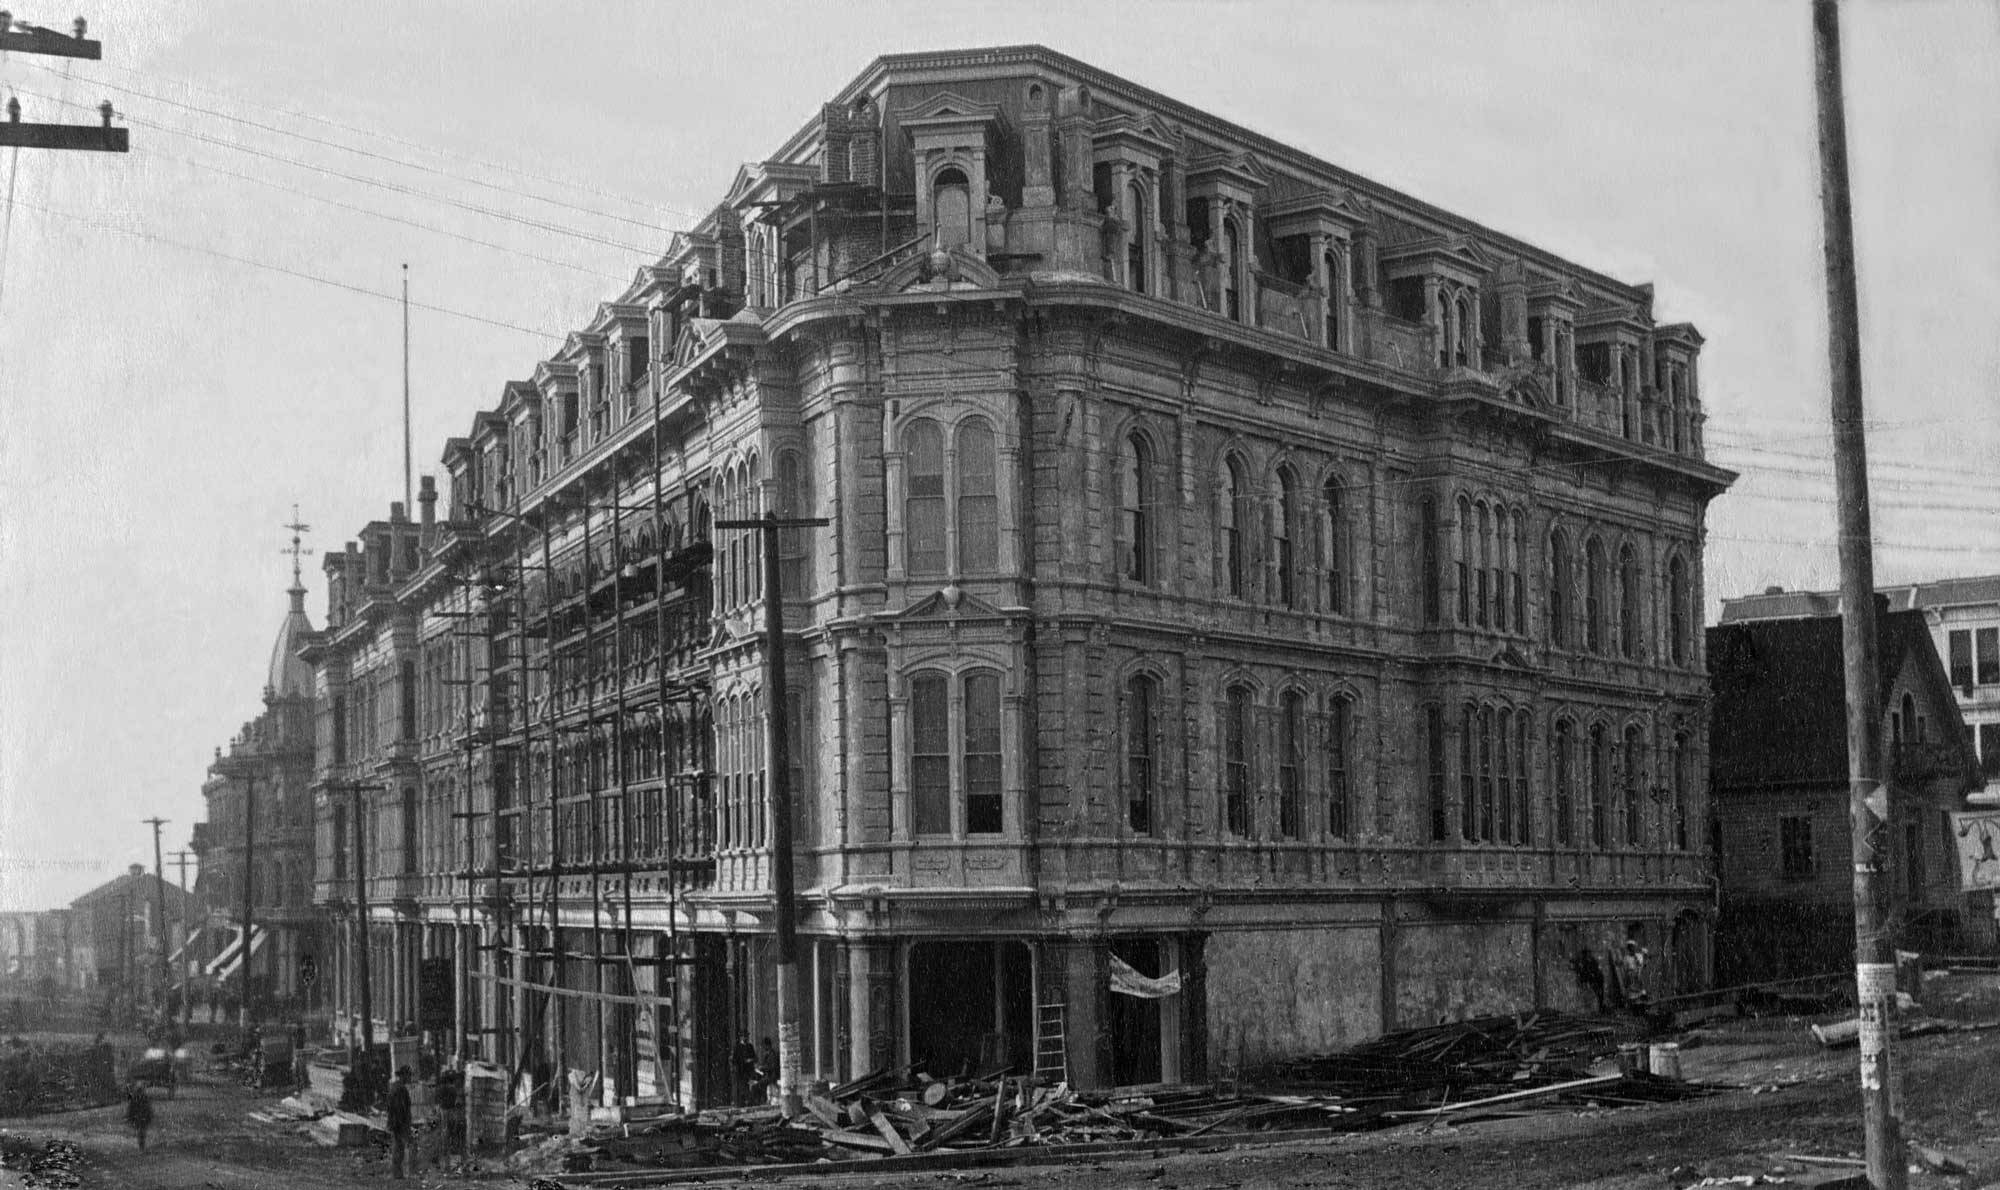 occidental-hotel-1887-then-mr.jpg